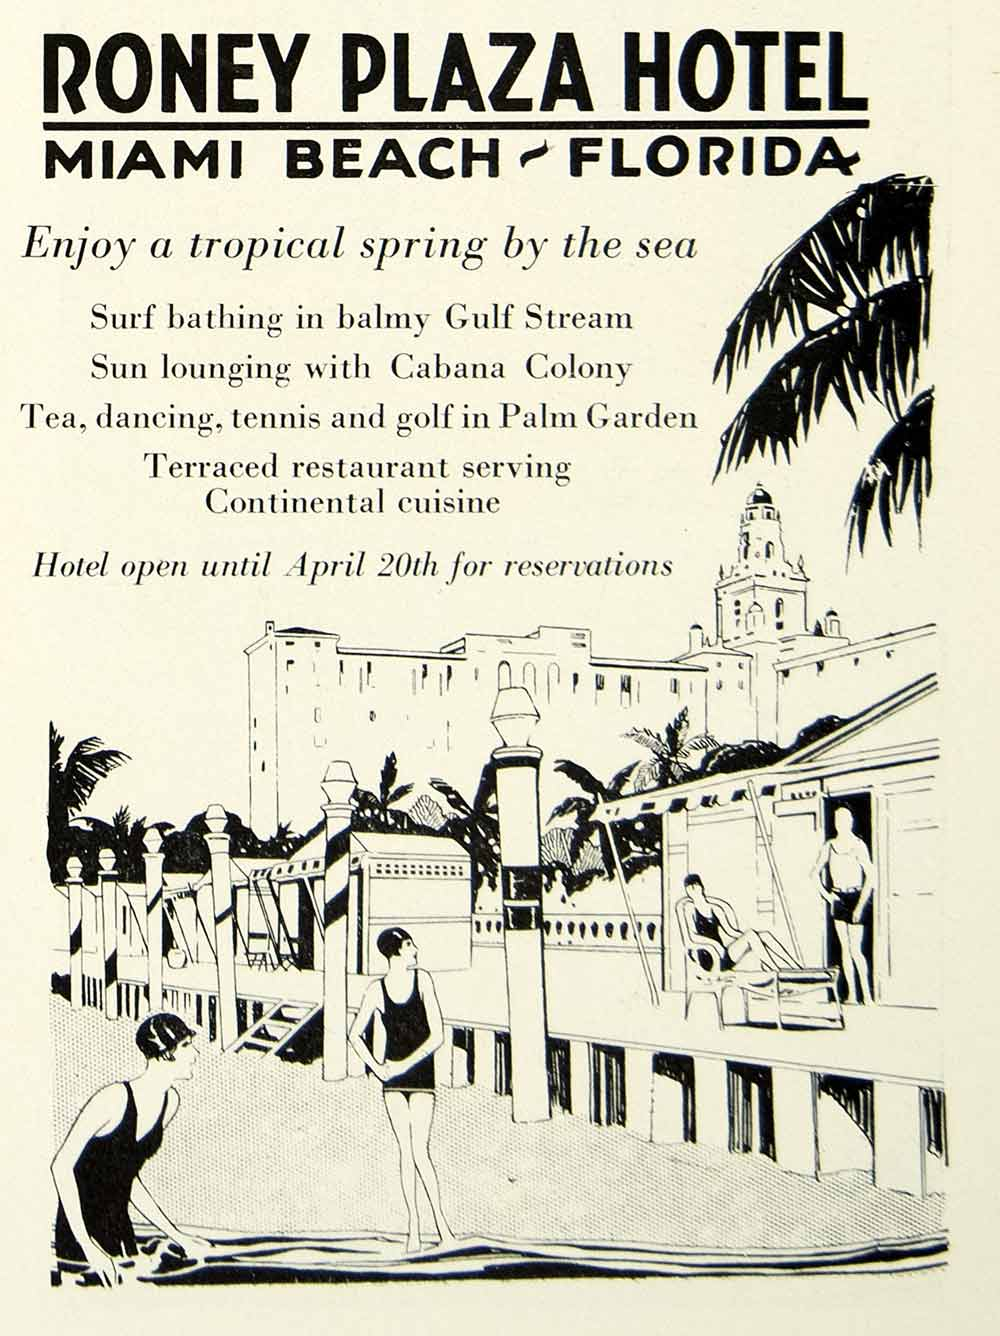 1930 Ad Roney Plaza Hotel Miami Beach Florida Tropical Swim Bathing Gulf YNM1